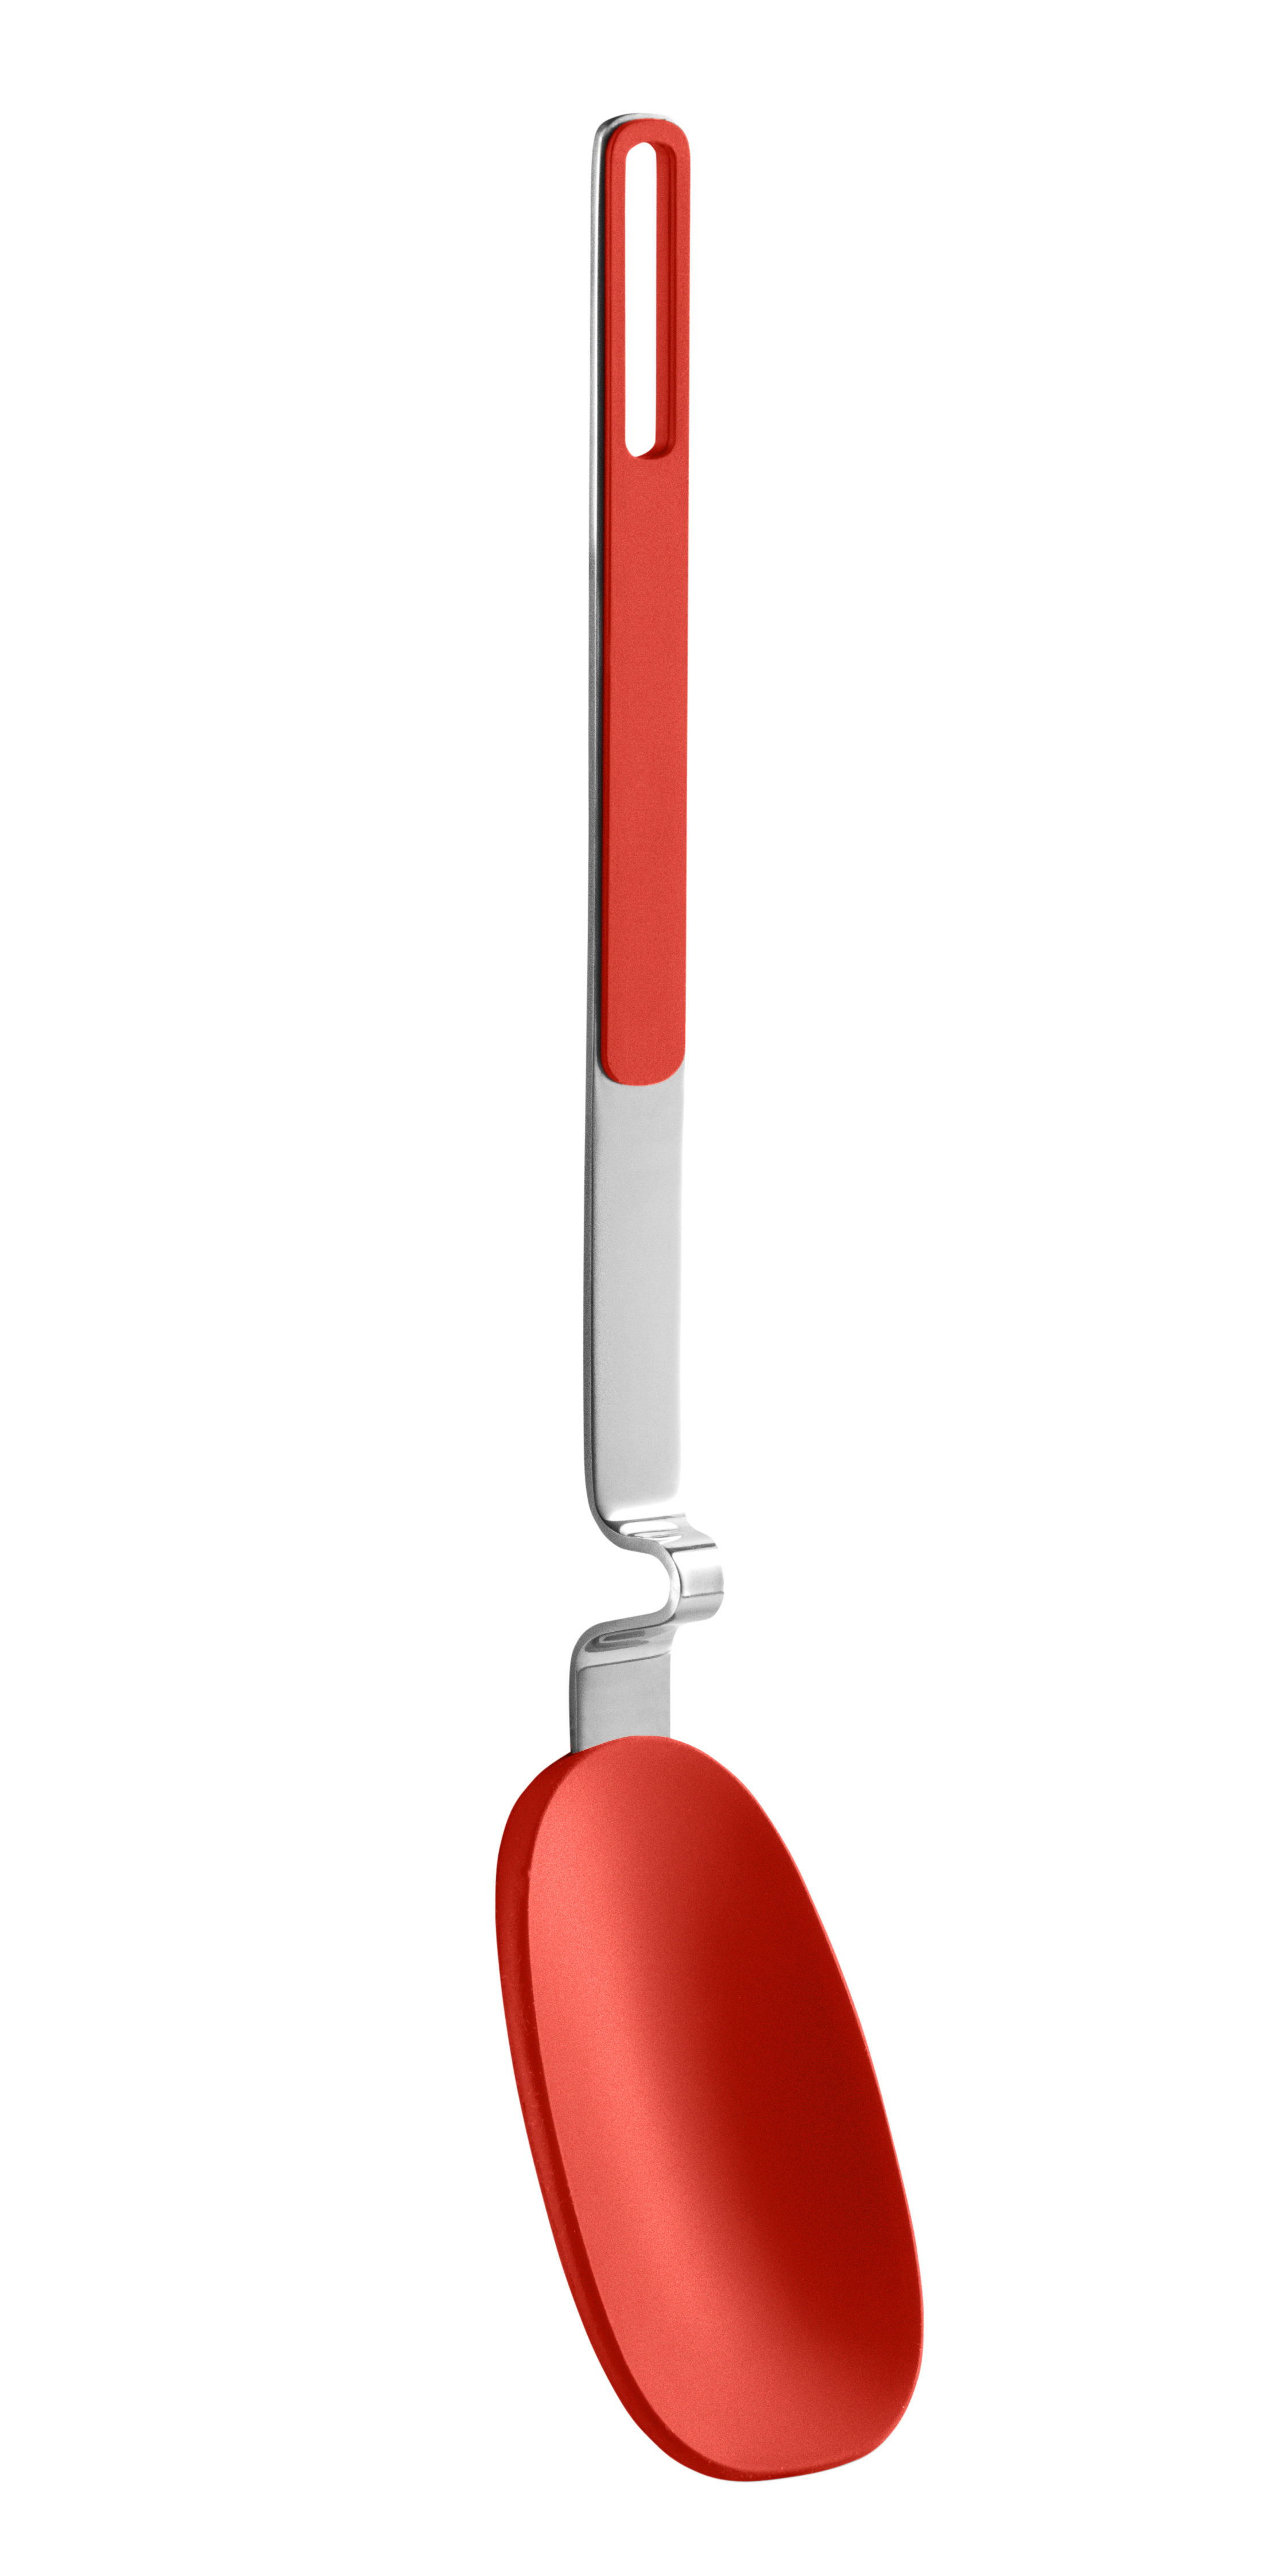 Kitchenware - Kitchen Equipment - Gravity Service spoon by Eva Solo - Flame - Silicone, Stainless steel